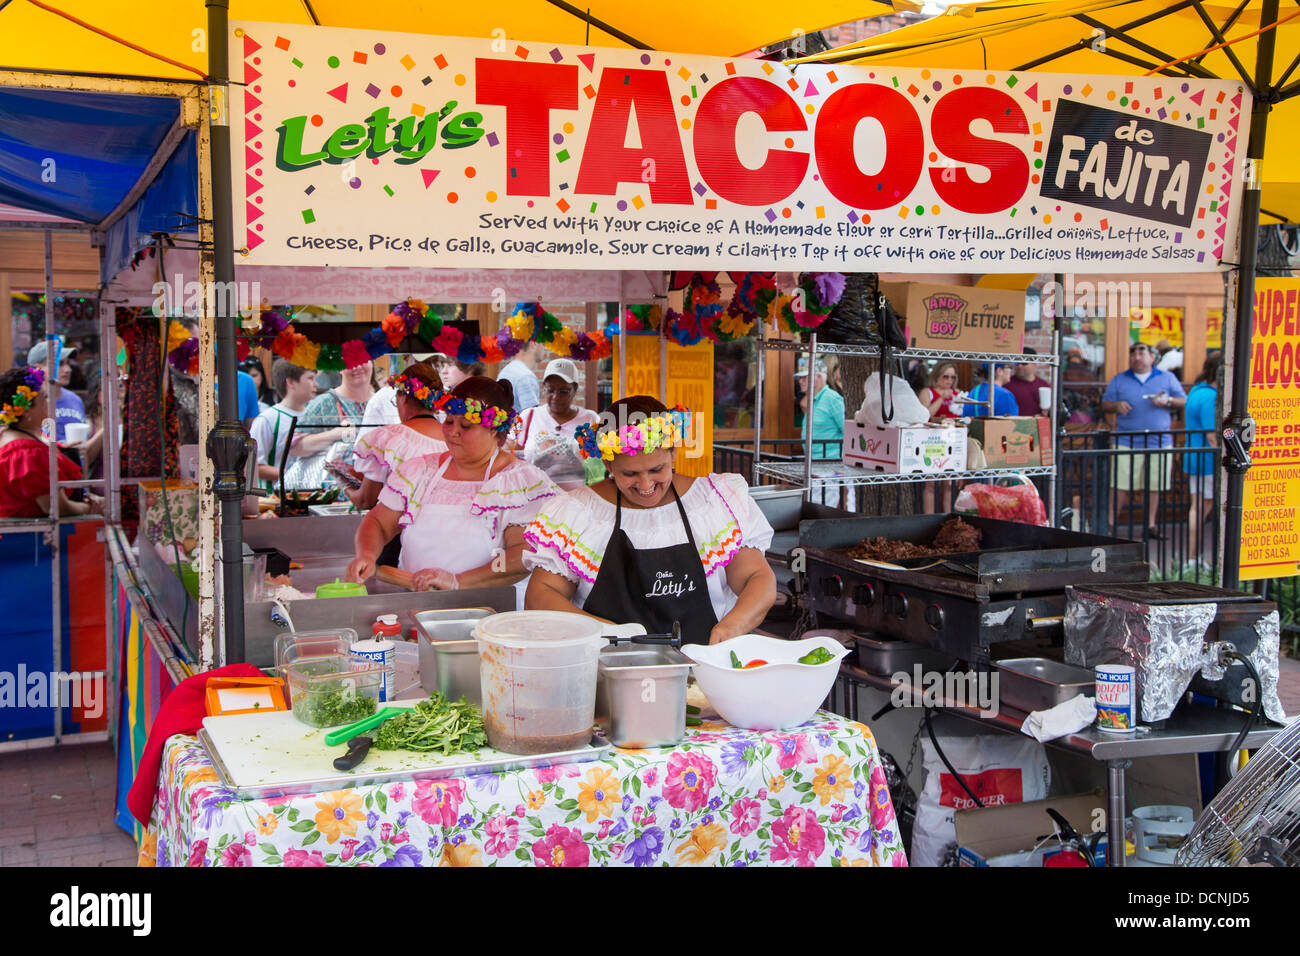 food stand in market square in san antonio texas stock photo 59482449 alamy. Black Bedroom Furniture Sets. Home Design Ideas